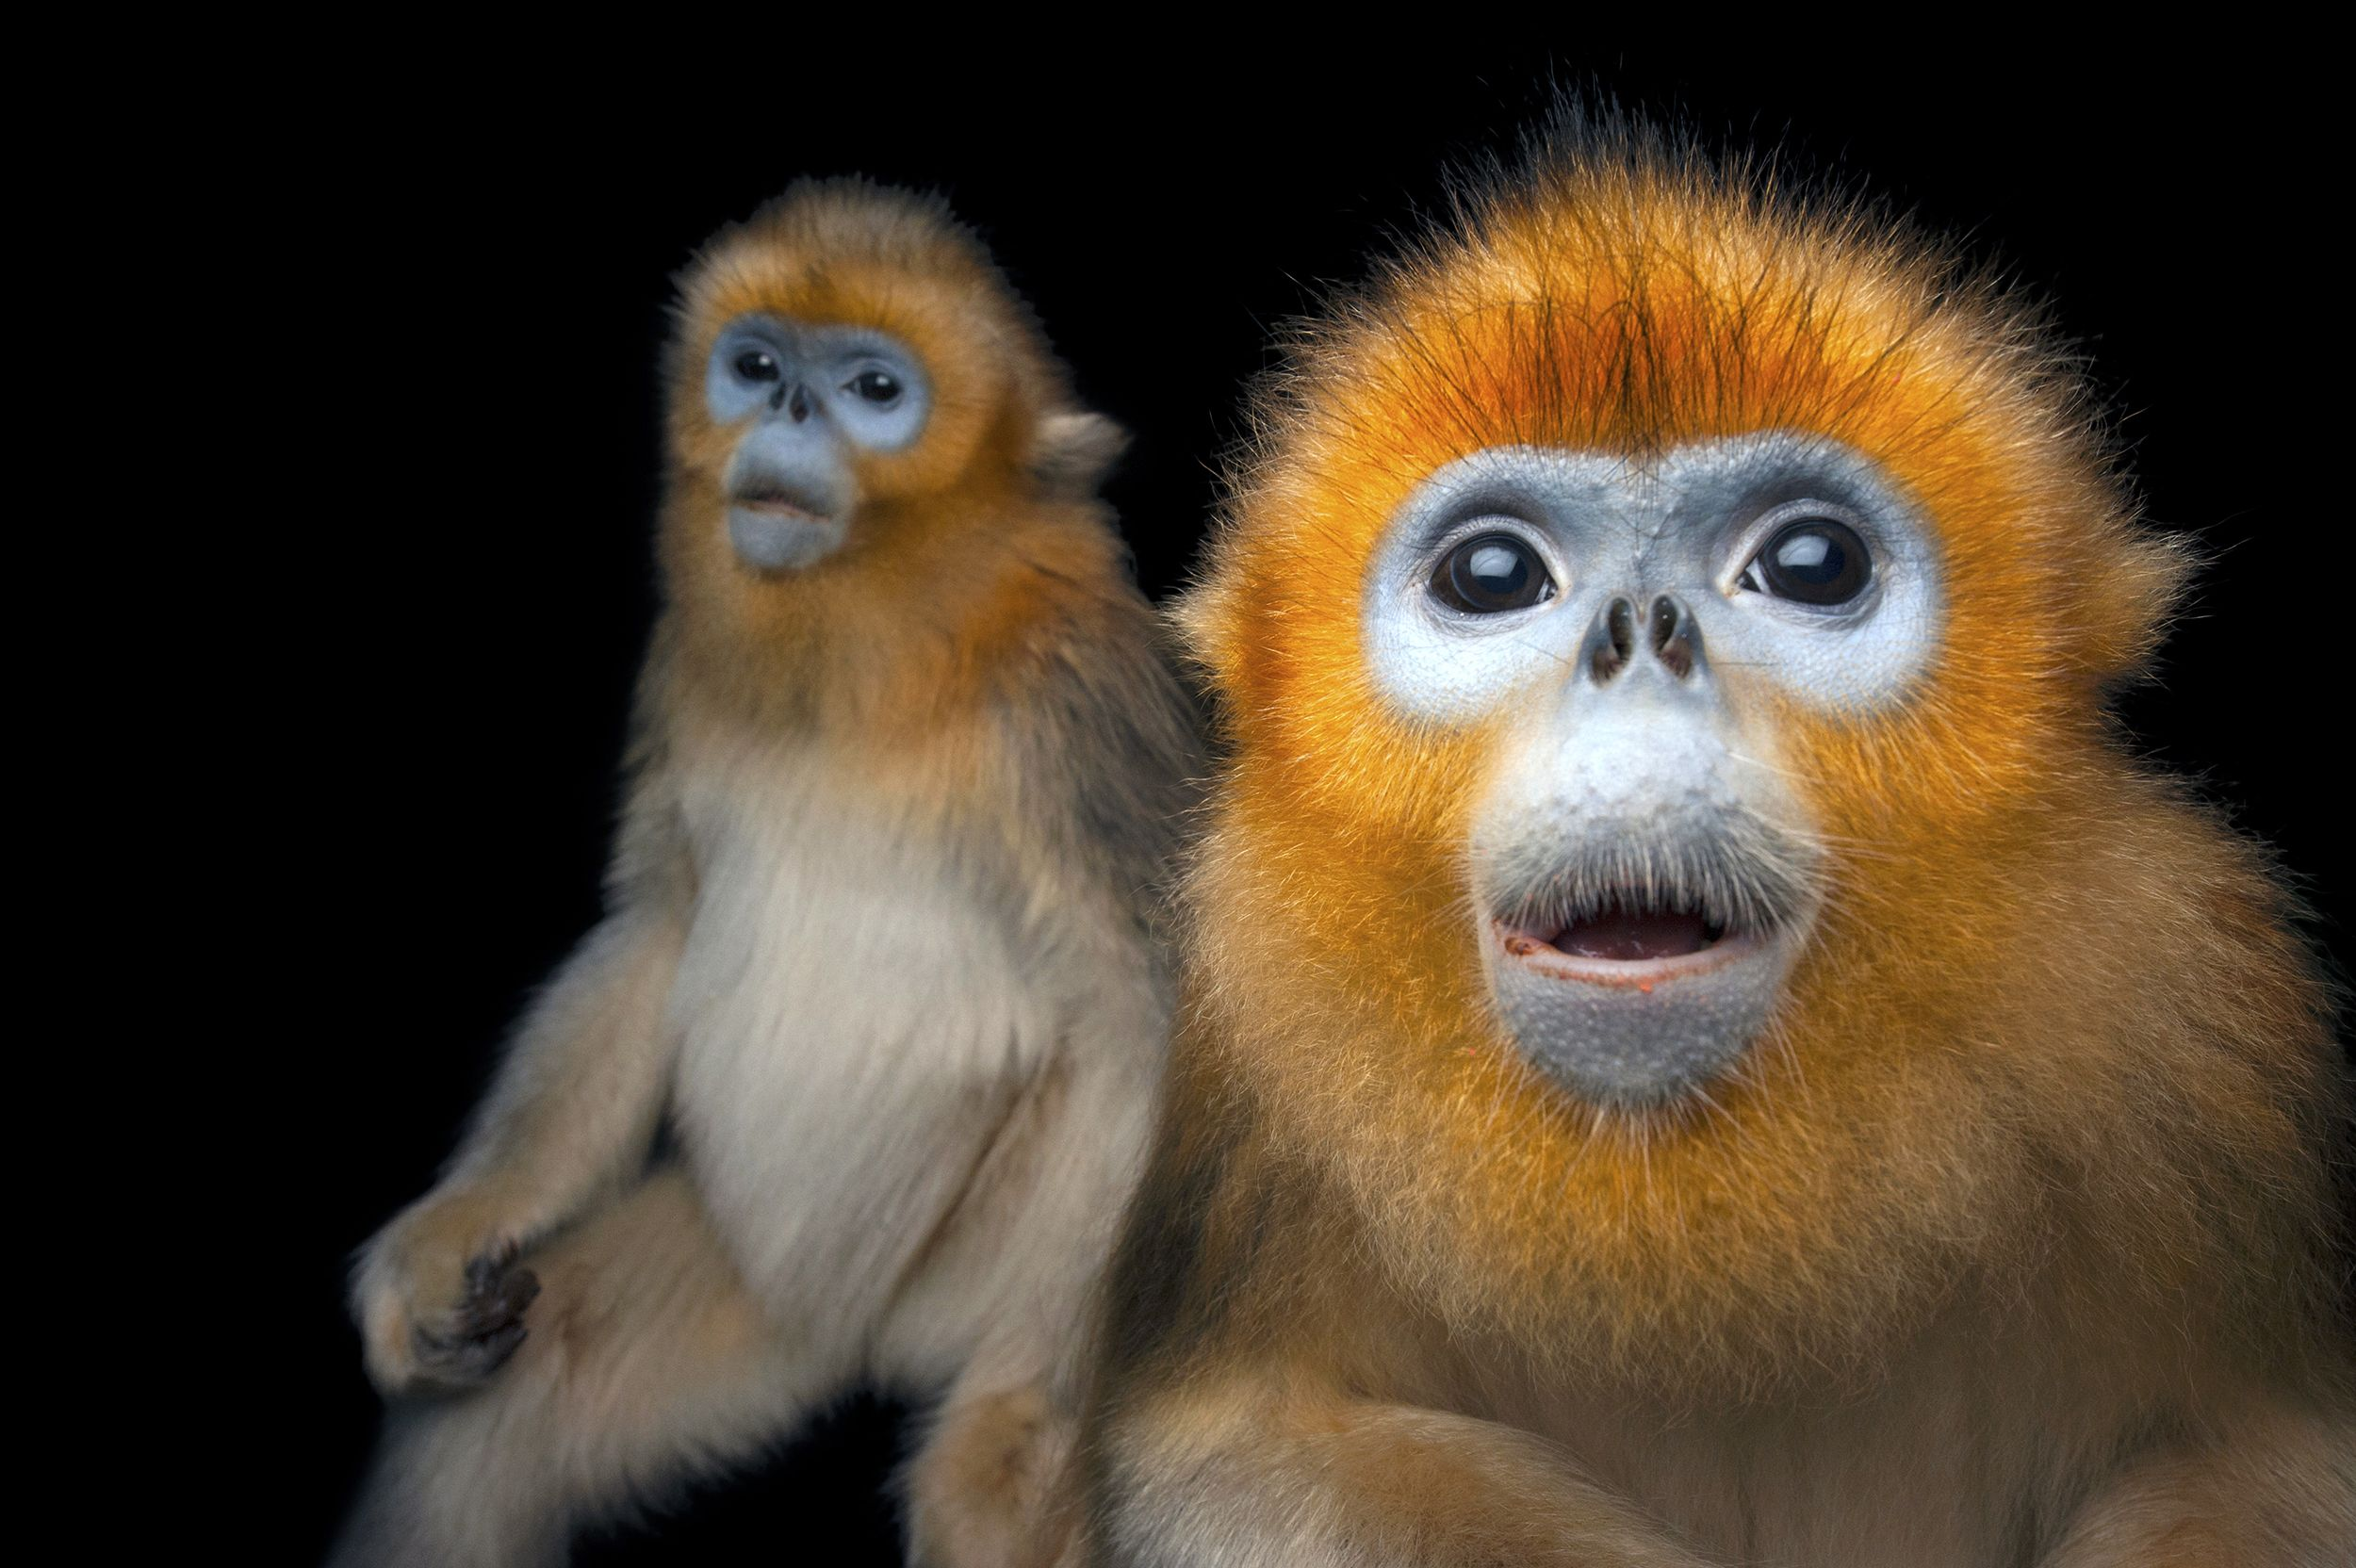 National Geographic Photographer Joel Sartore Has Visited 40